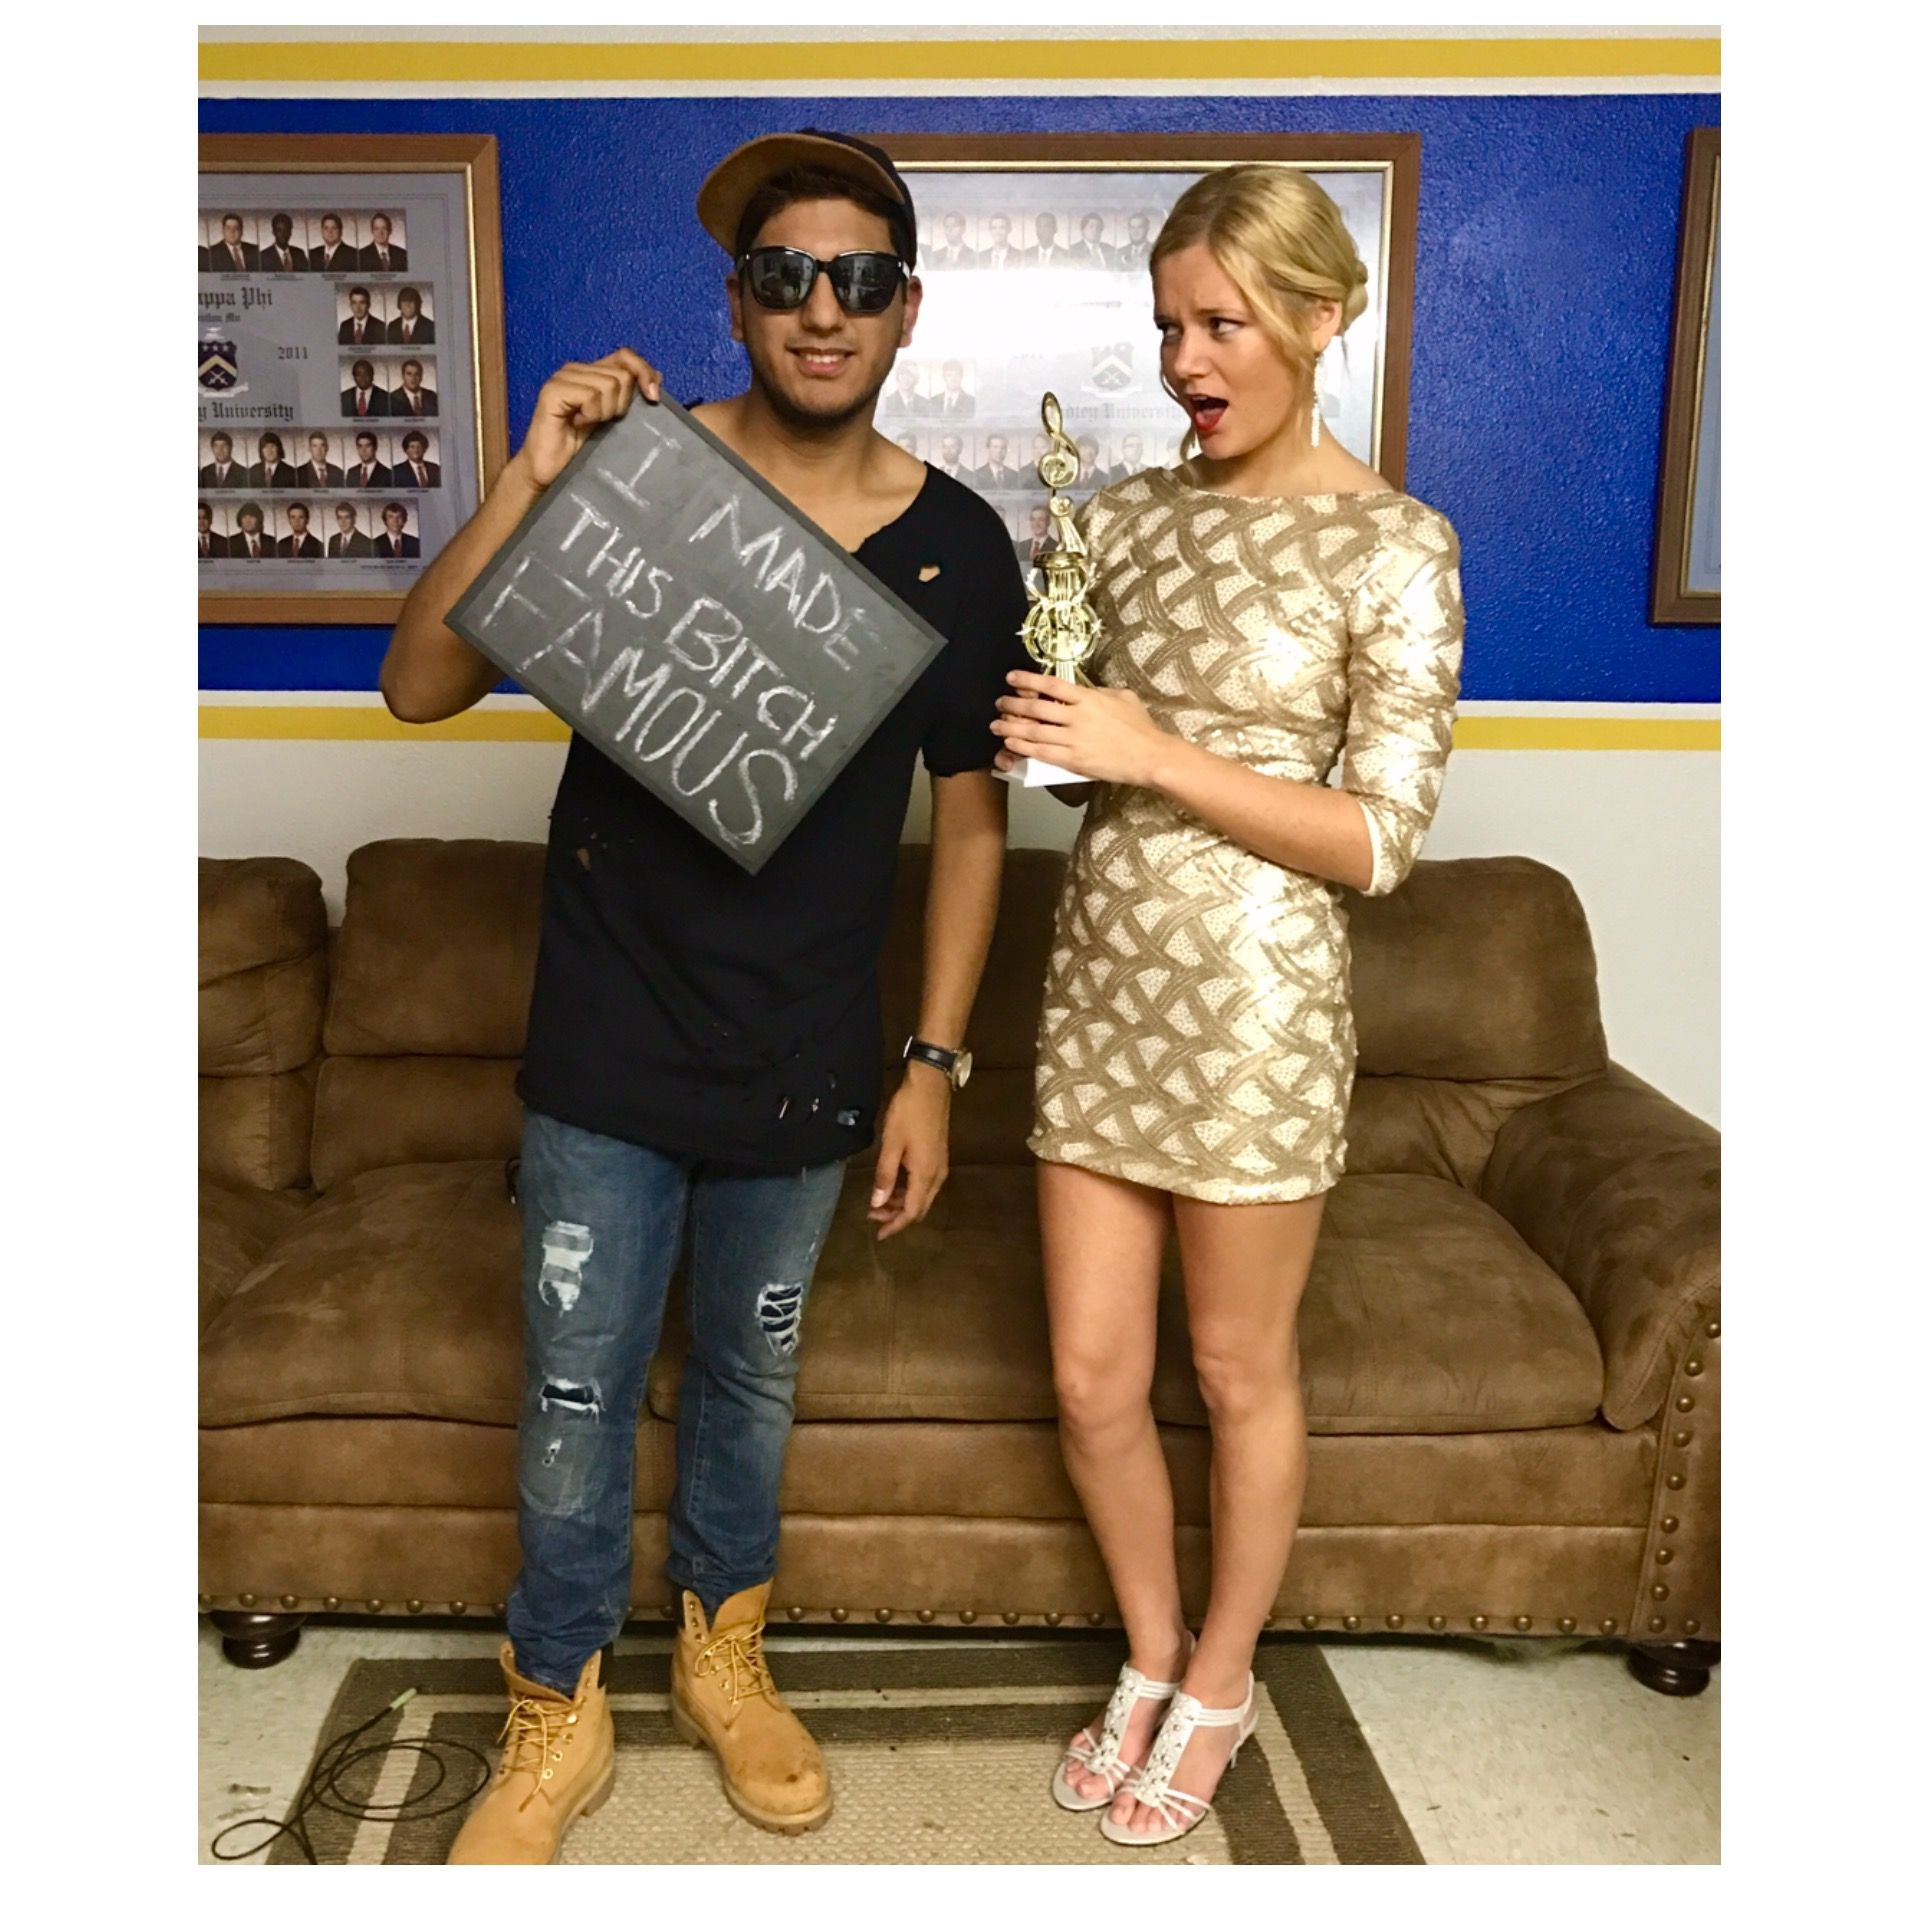 kanye west and taylor swift halloween costume | halloween outfit